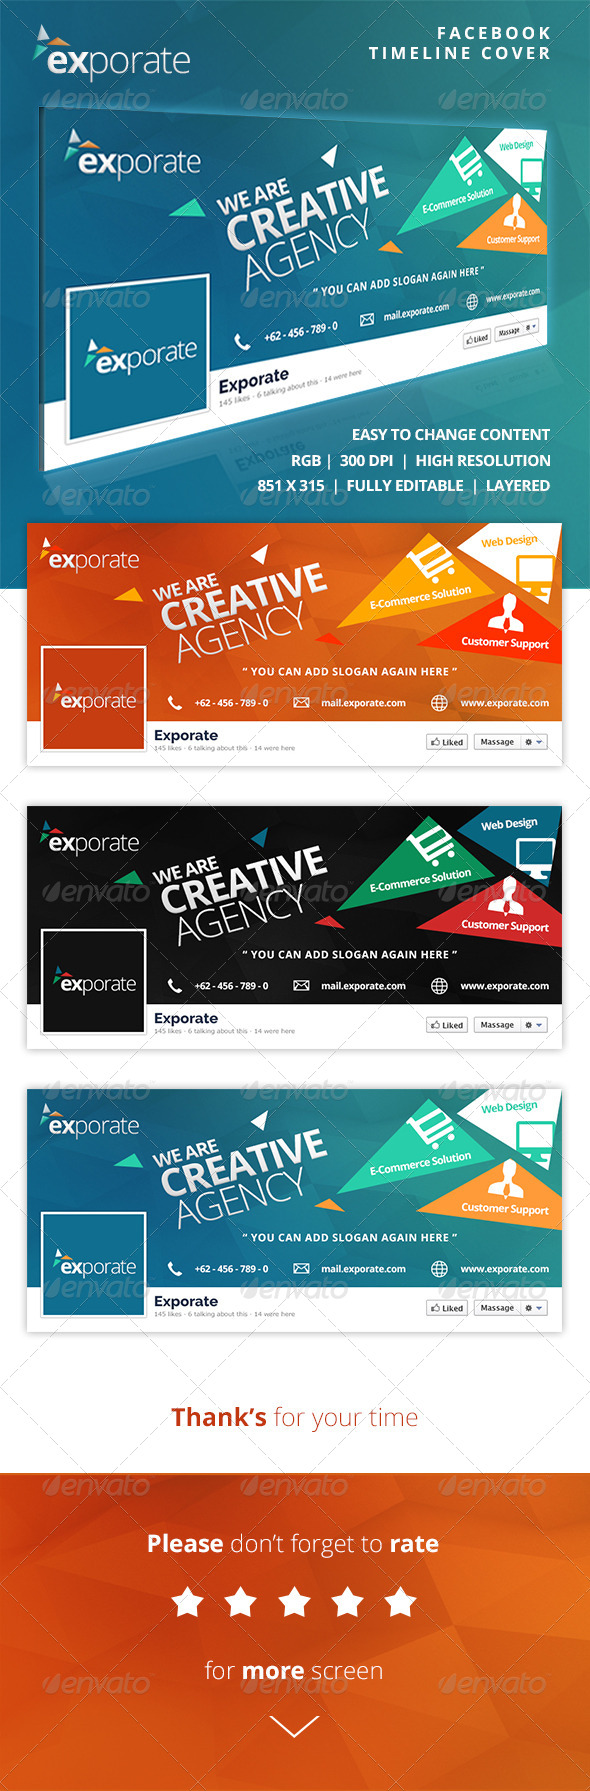 GraphicRiver Exporate Facebook Timeline Cover 8140038